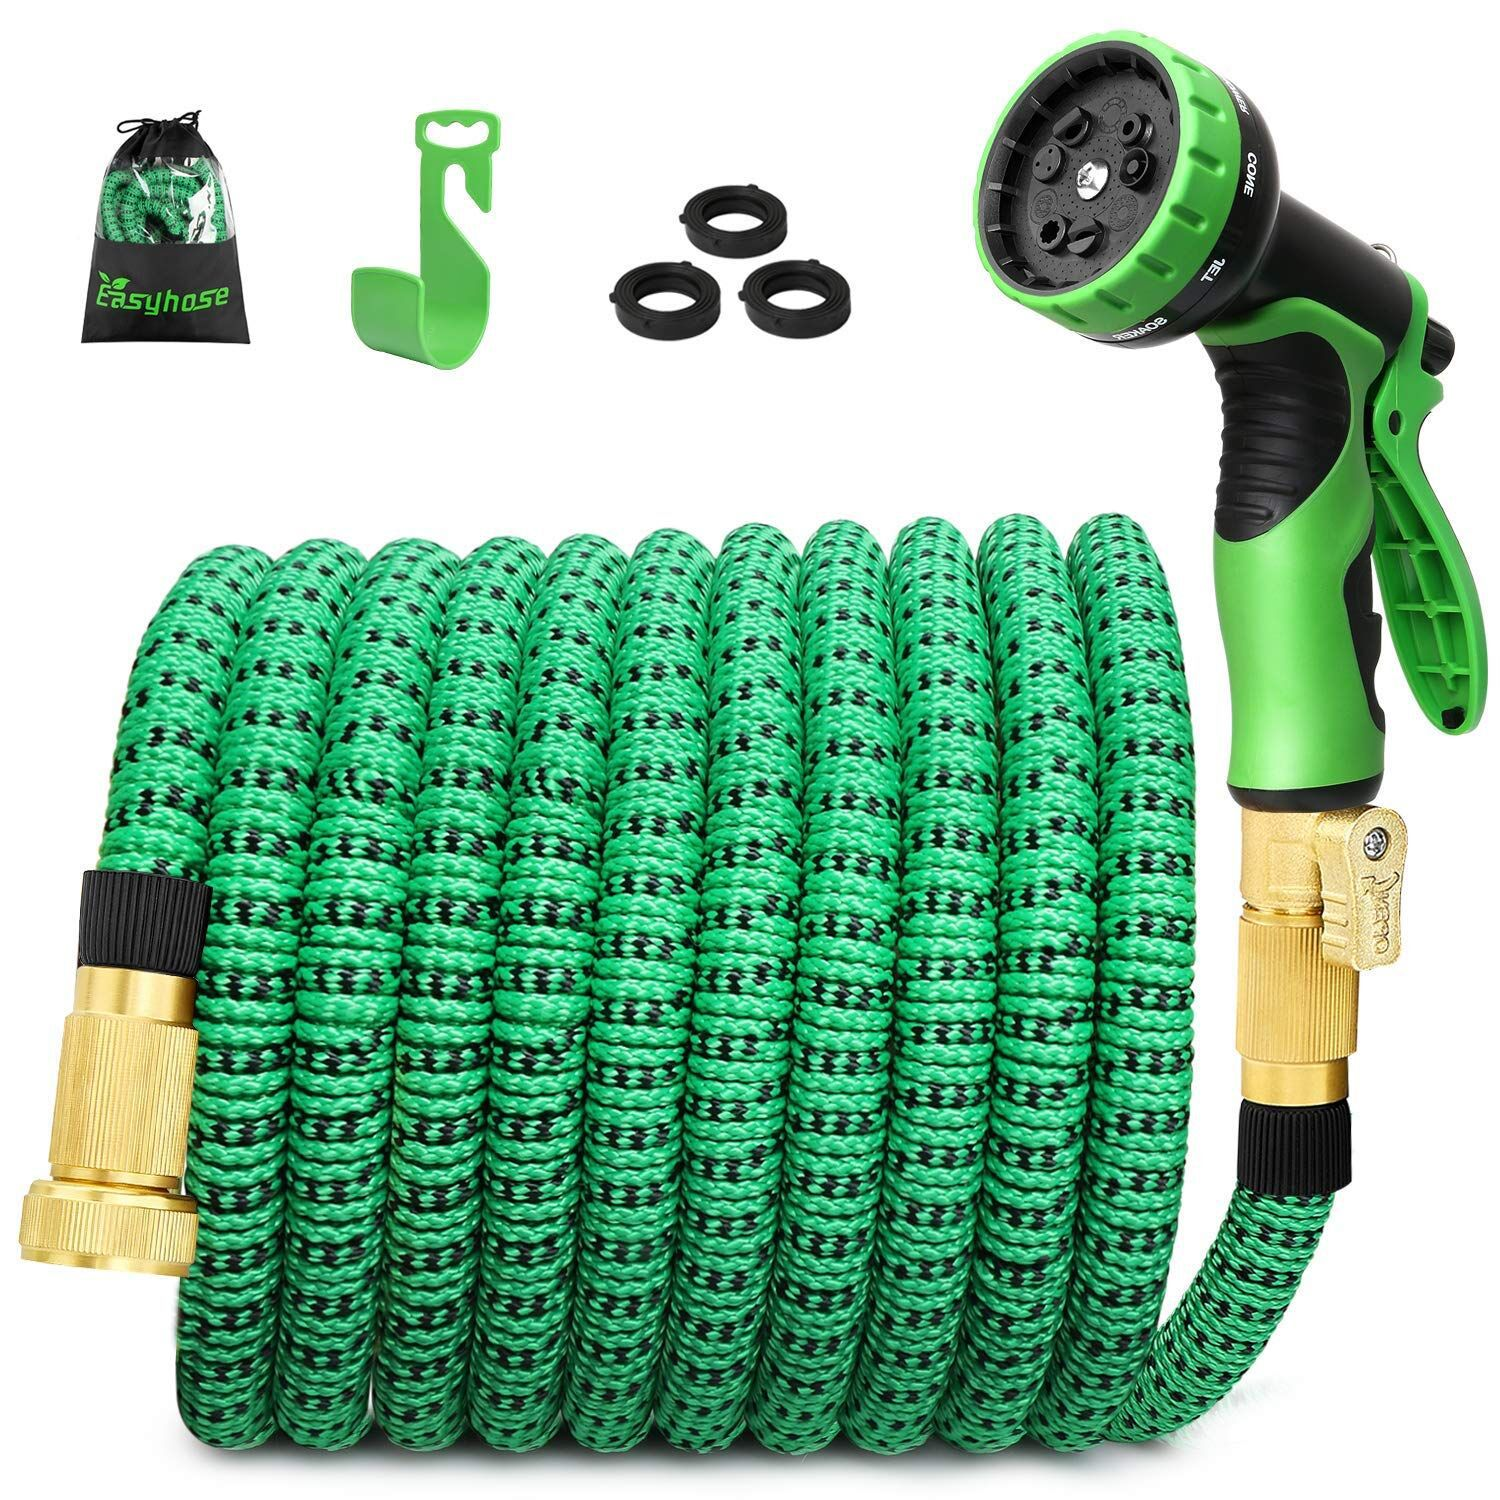 Europe And America Version 50FT Three Times Telescopic Garden Hose Multi-functional Household Vehicle Cleaning Garden Hose Manuf